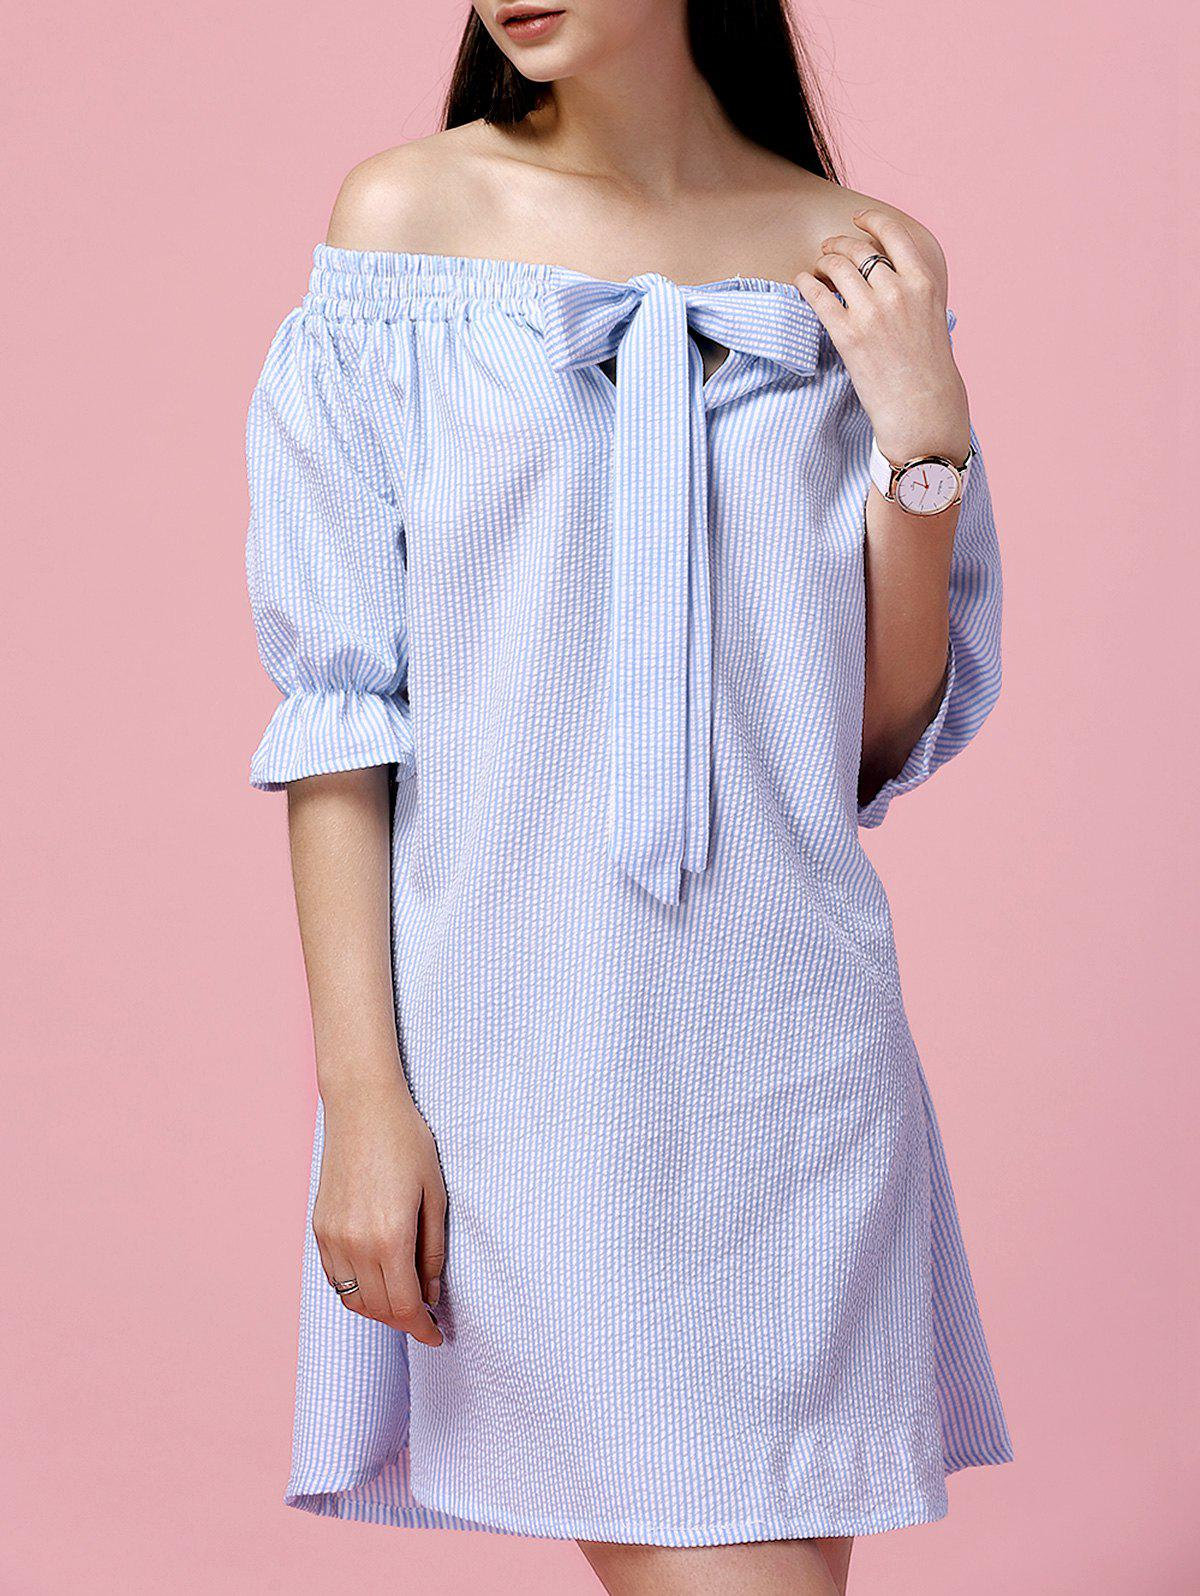 Off The Shoulder Bowknot Vertical Striped Alluring Women's Dress - BLUE XL